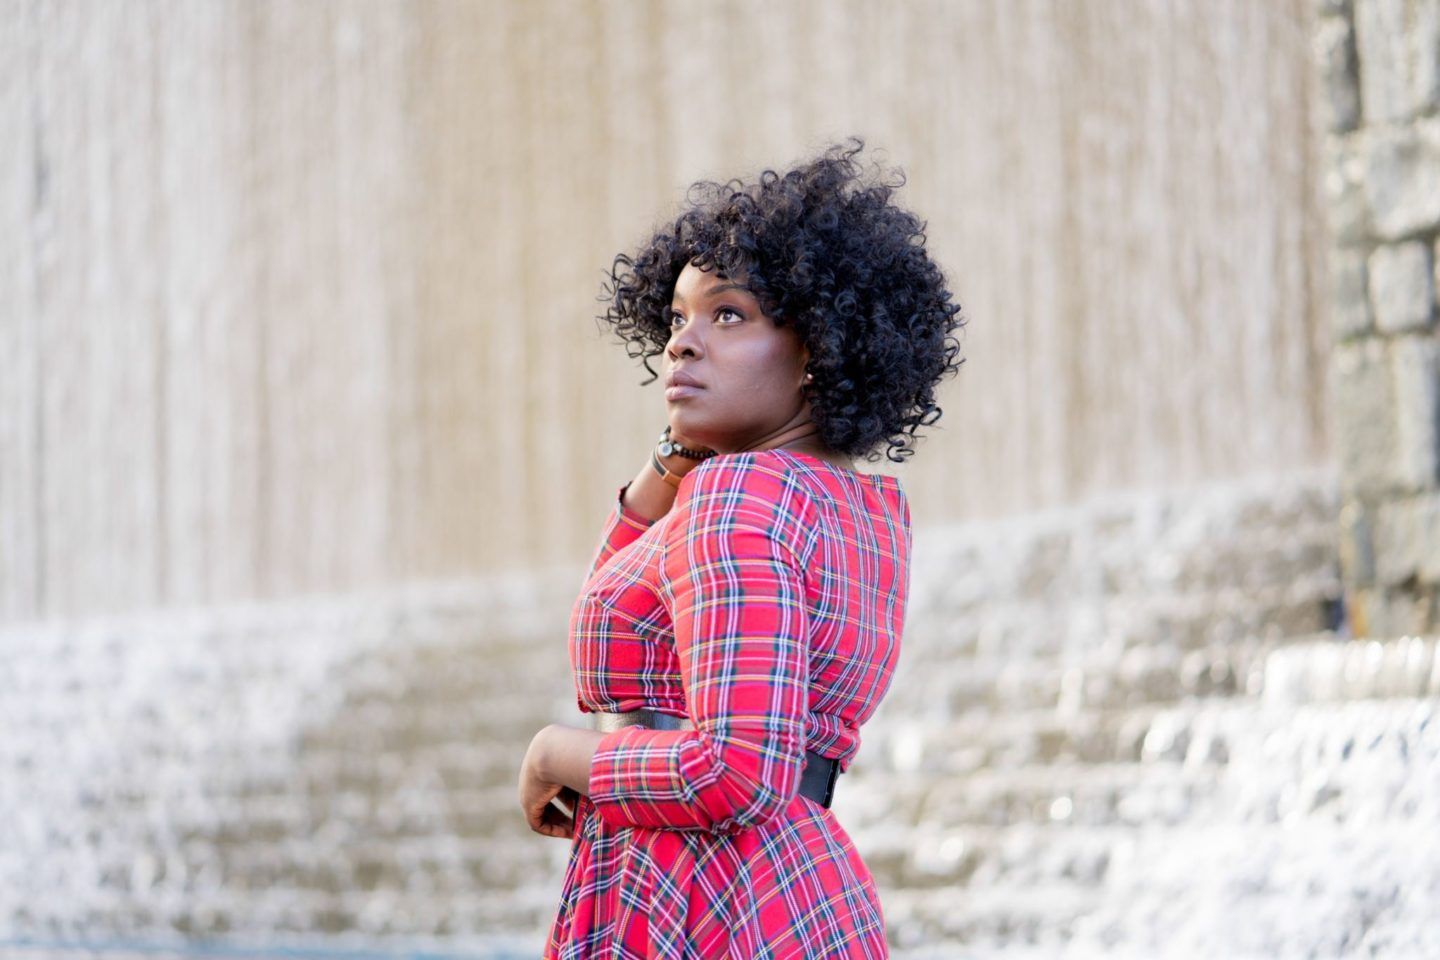 Curly haired black girl wearing red tartan dress